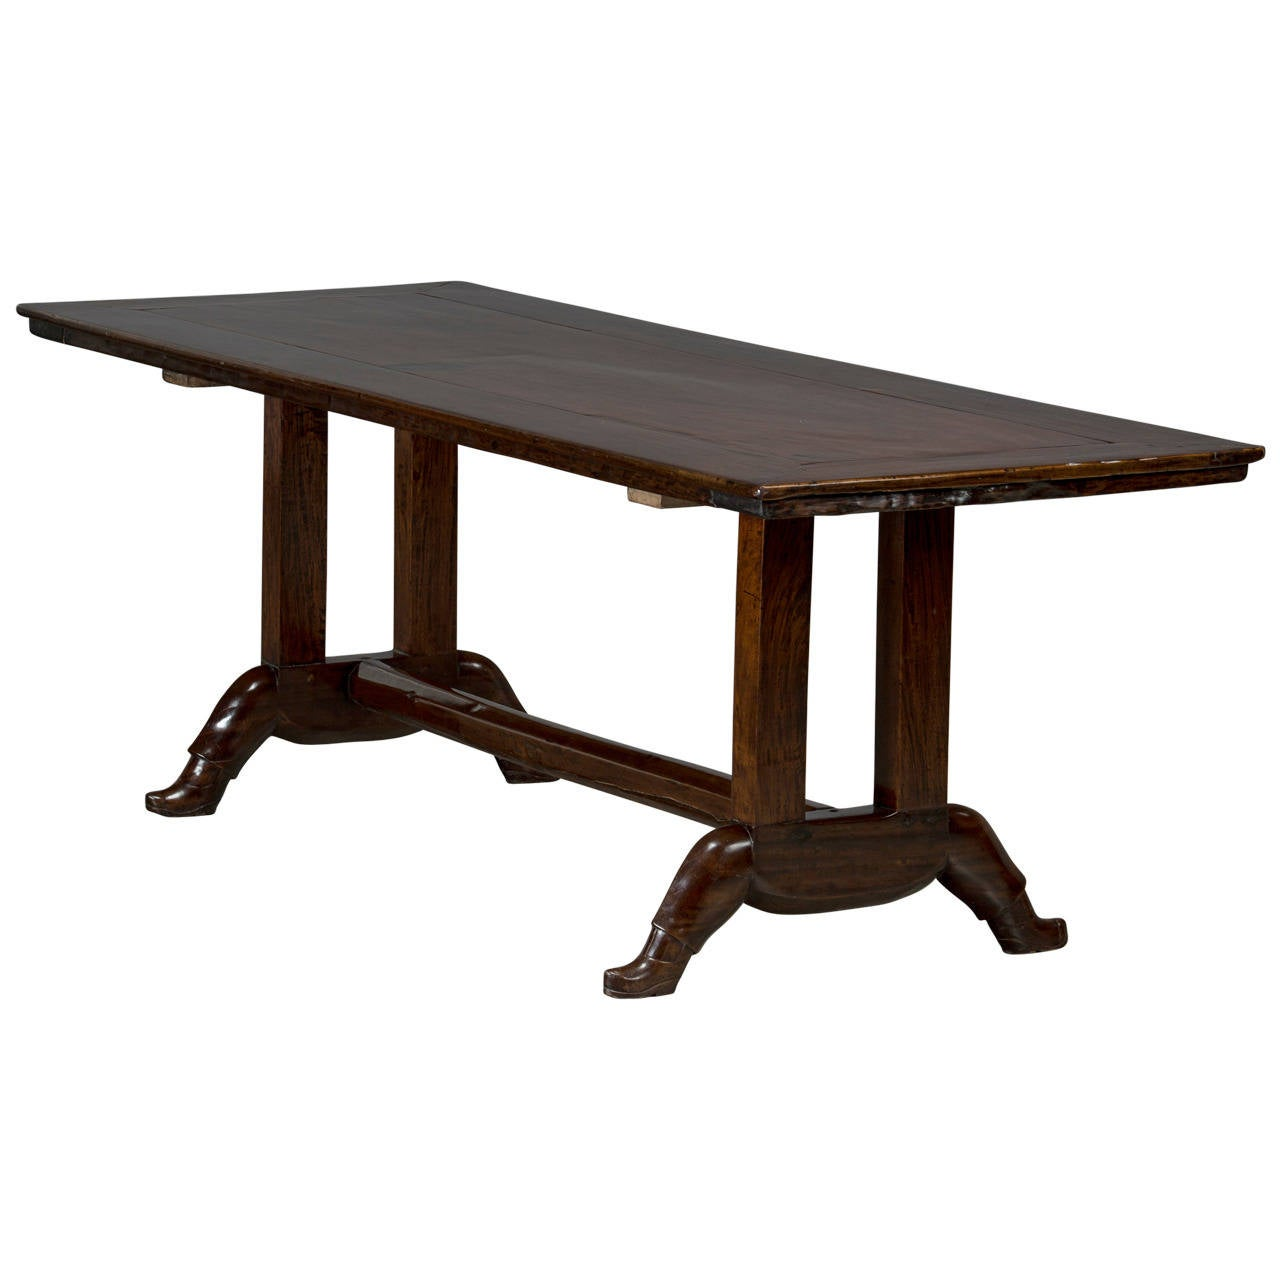 Narra Wood Dining Table Images Narra Wood Dining Table  : 1639632l from favefaves.com size 1280 x 1280 jpeg 63kB